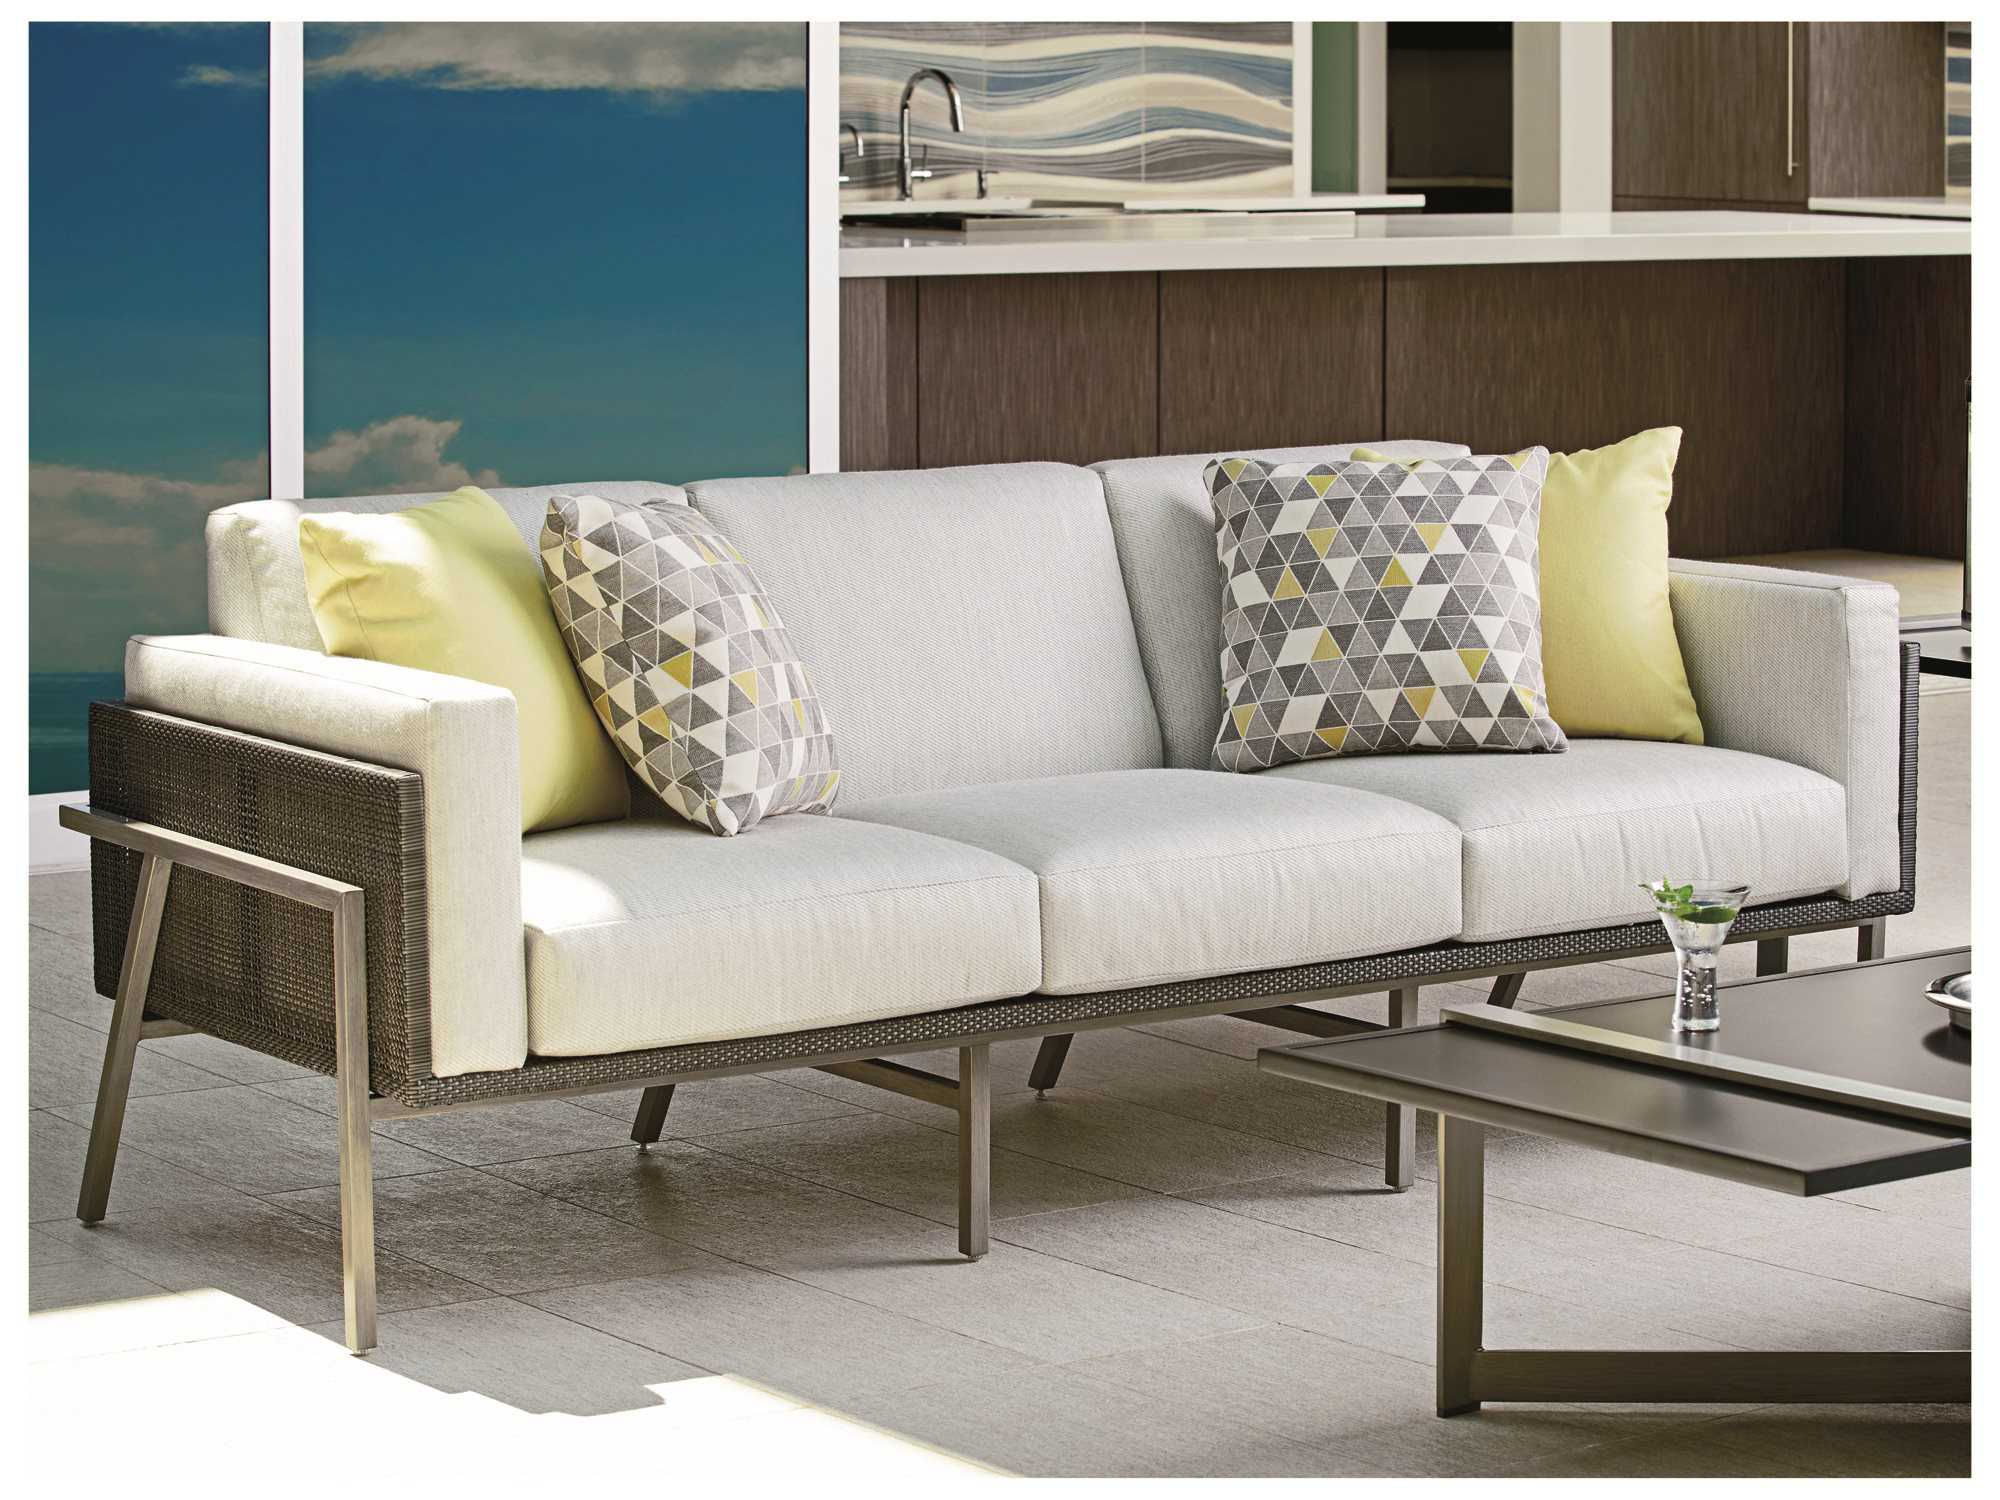 del mar custom sectional sofa difference couch davenport tommy bahama outdoor 3800 33